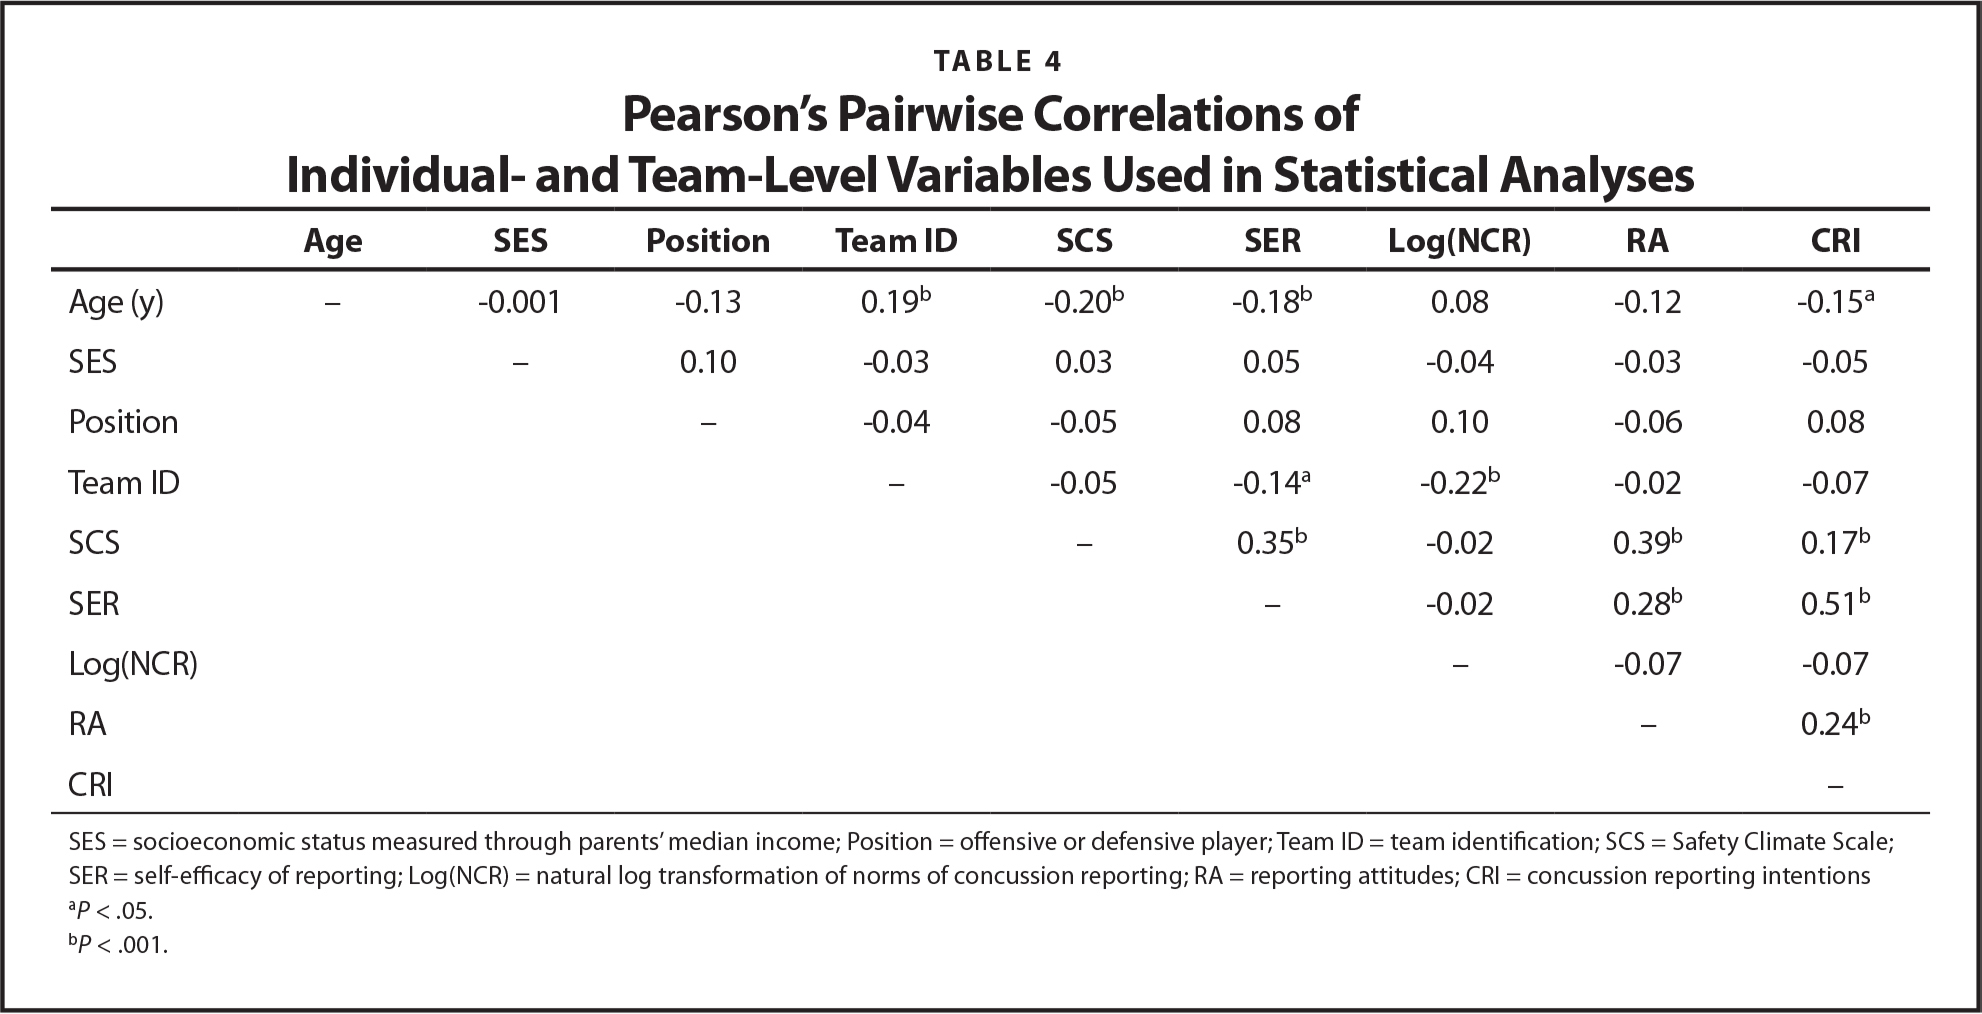 Pearson's Pairwise Correlations of Individual- and Team-Level Variables Used in Statistical Analyses